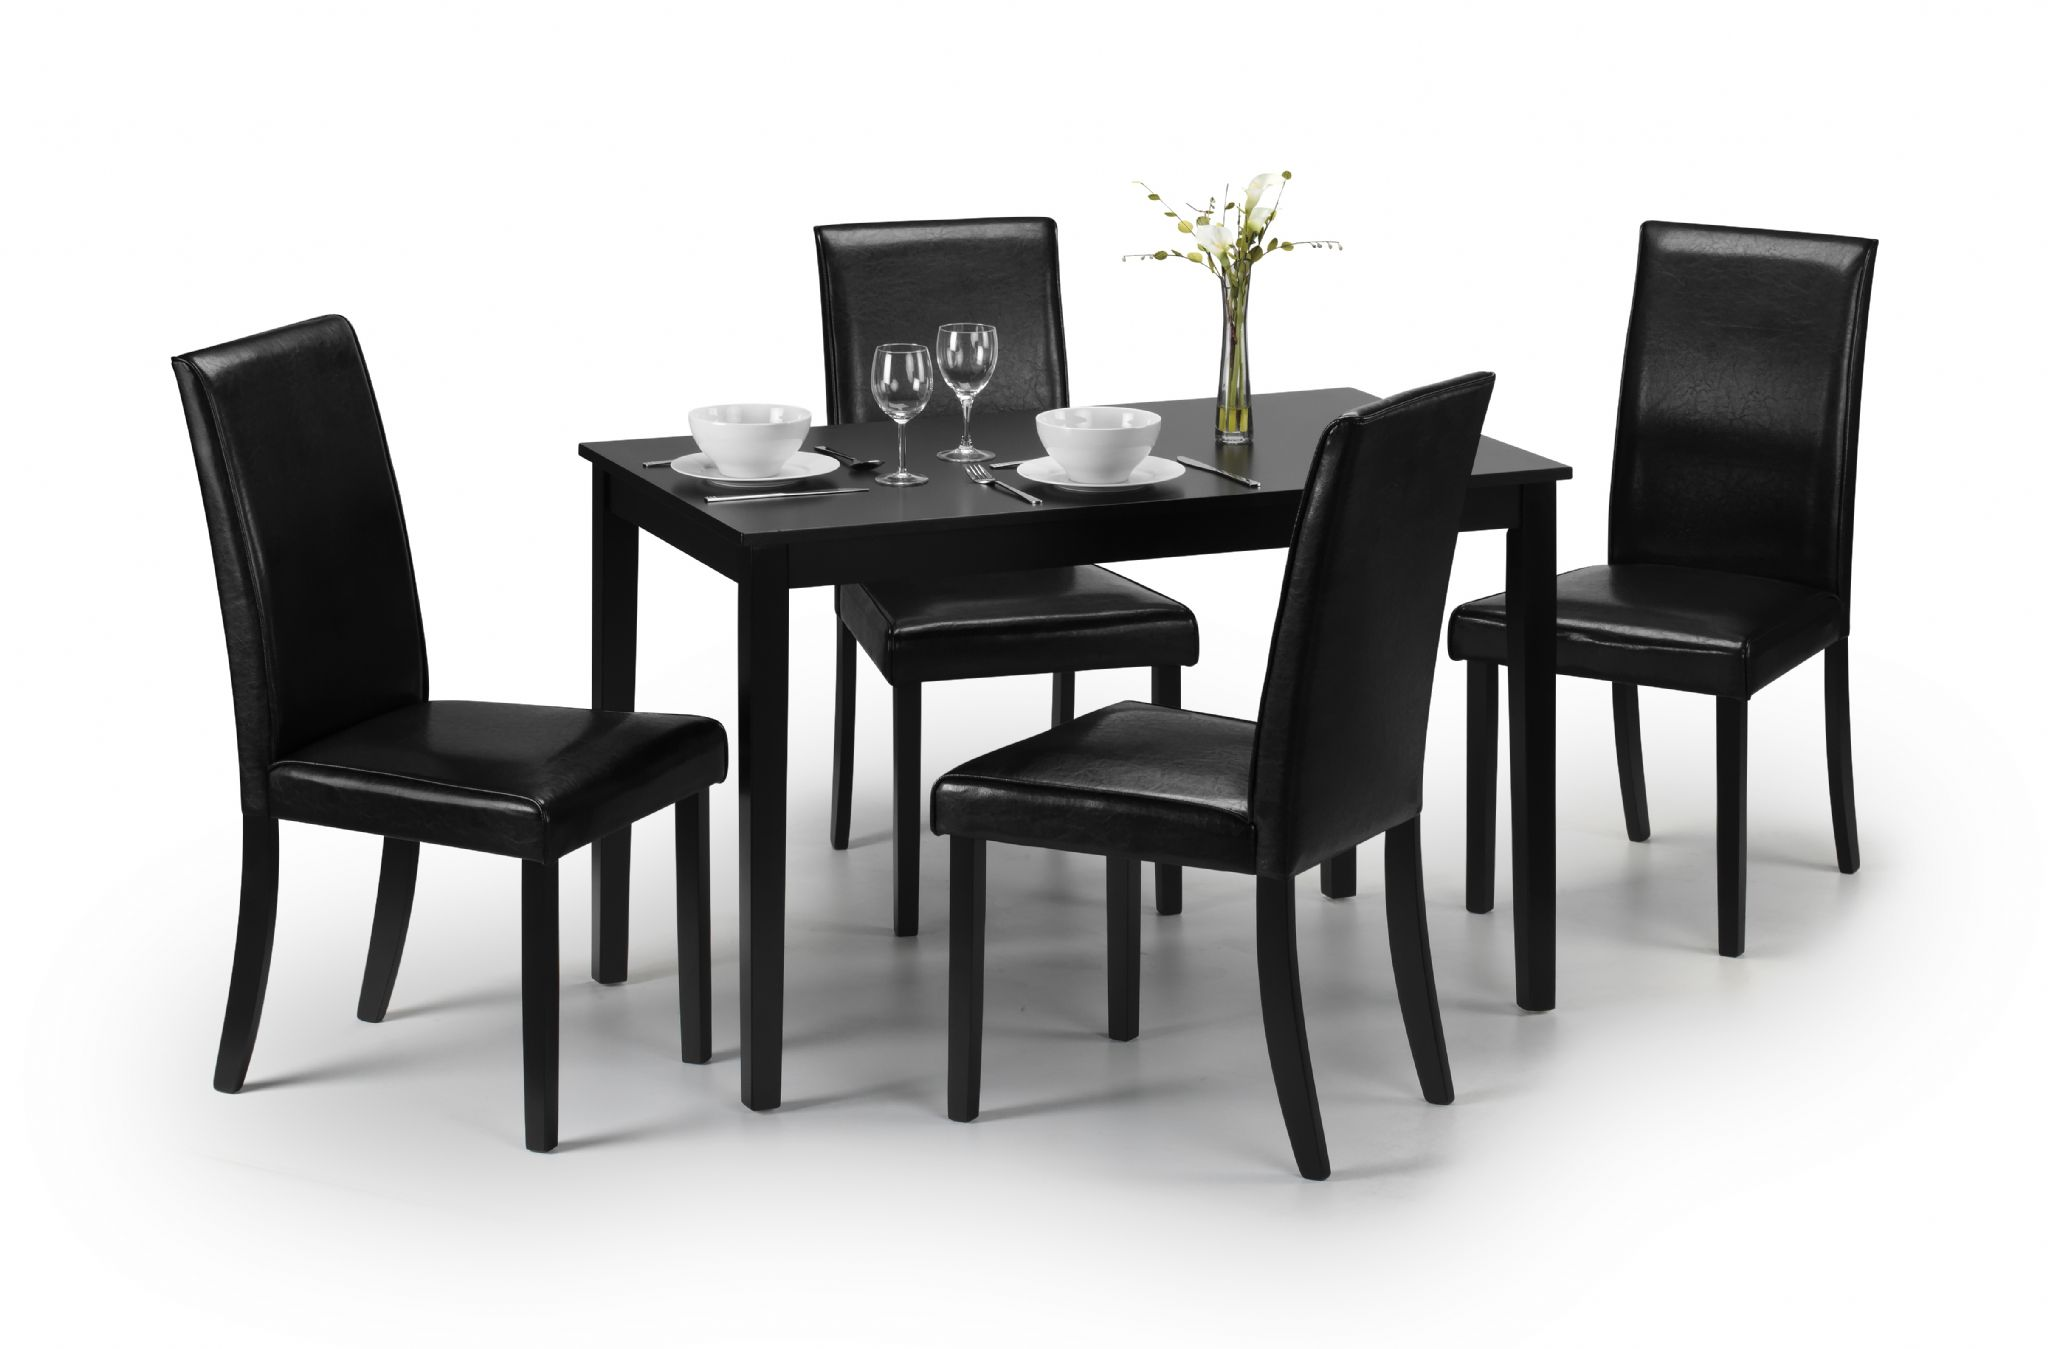 Black Dining Table Uk Alfonso Dining Table Black  : catania modern black lacquered dining table jb233 2 4262 p from amlibgroup.com size 2048 x 1349 jpeg 140kB